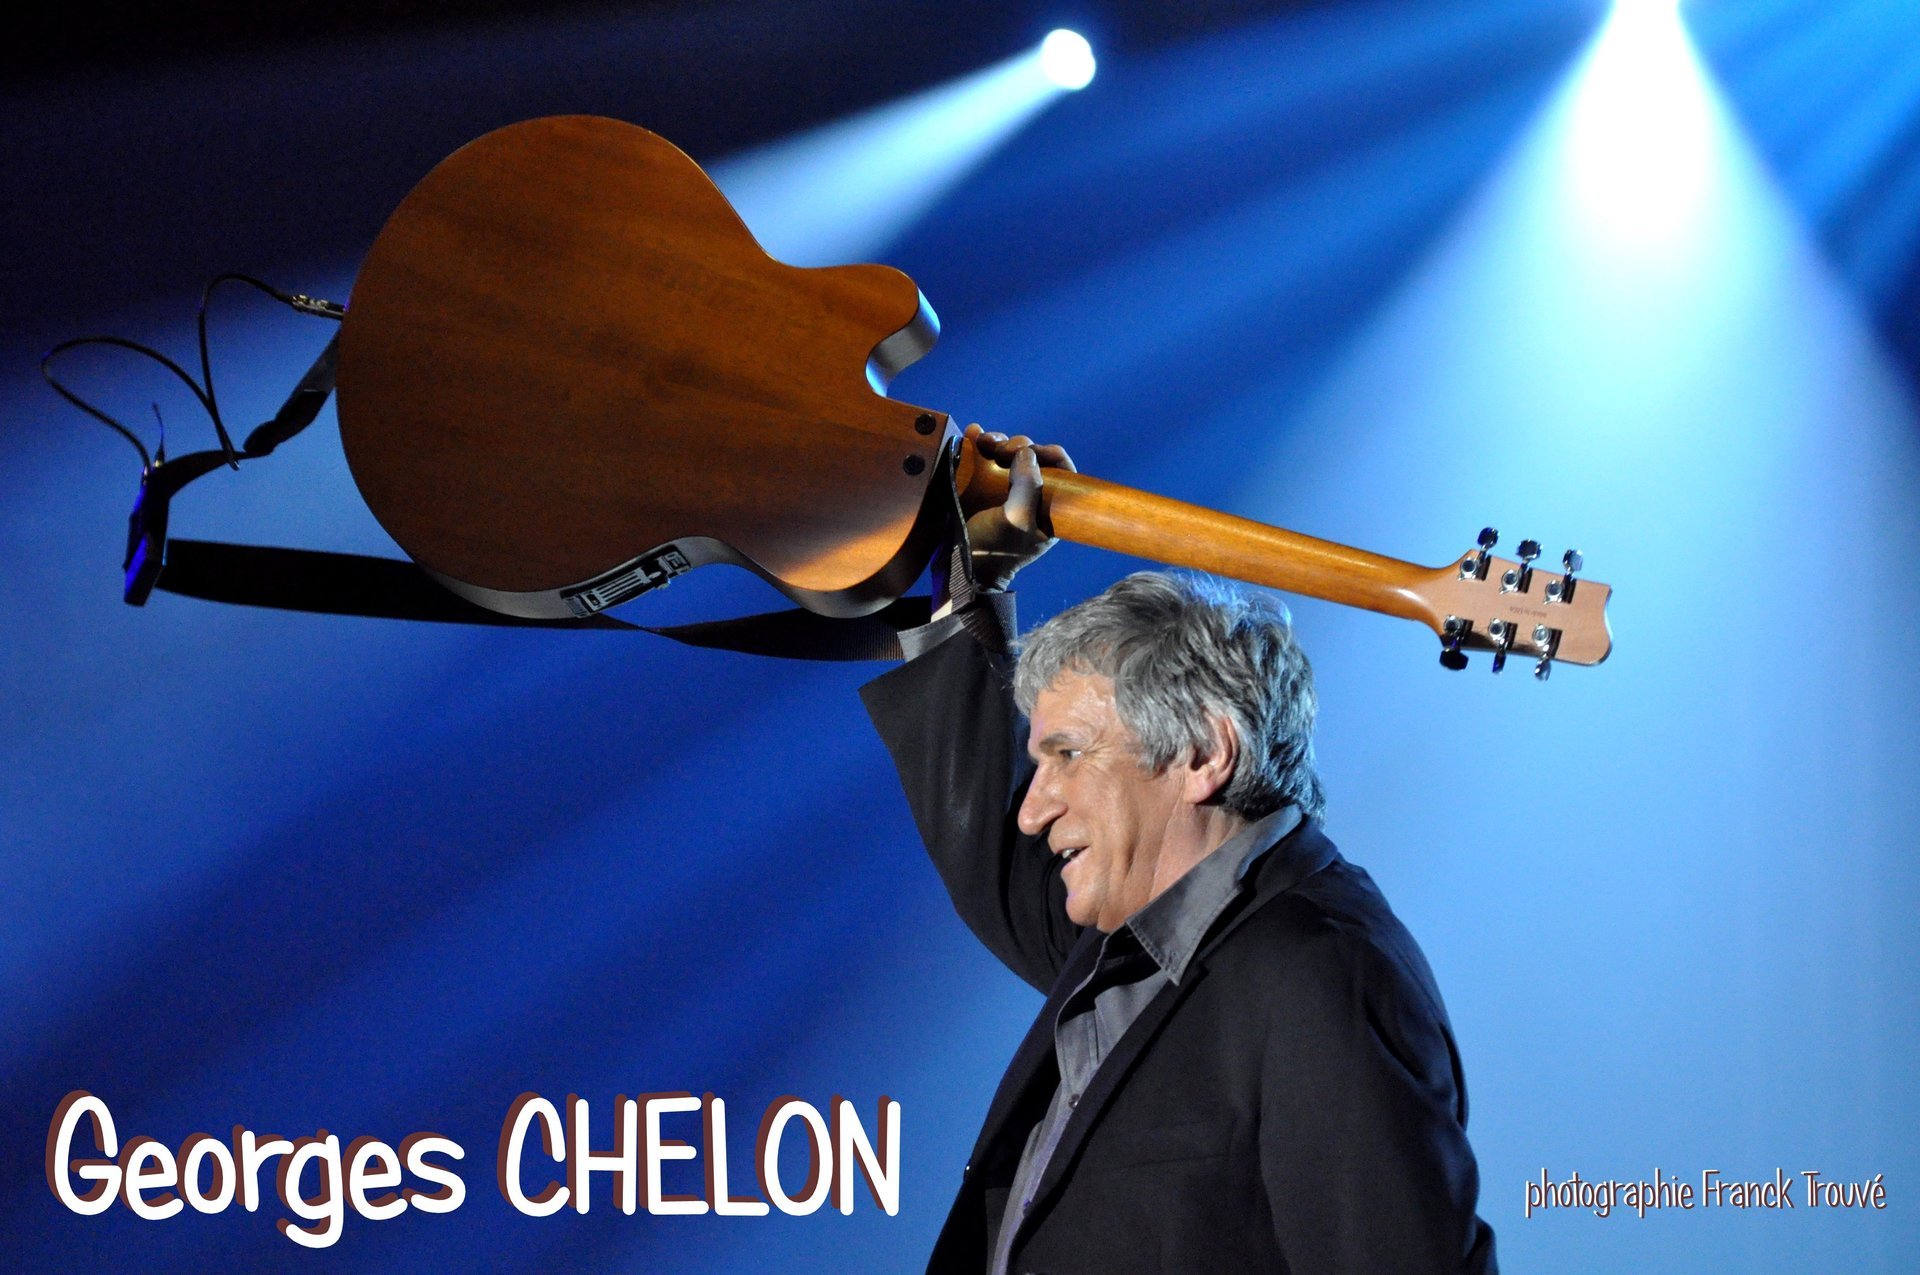 georges chelon photo franck trouve